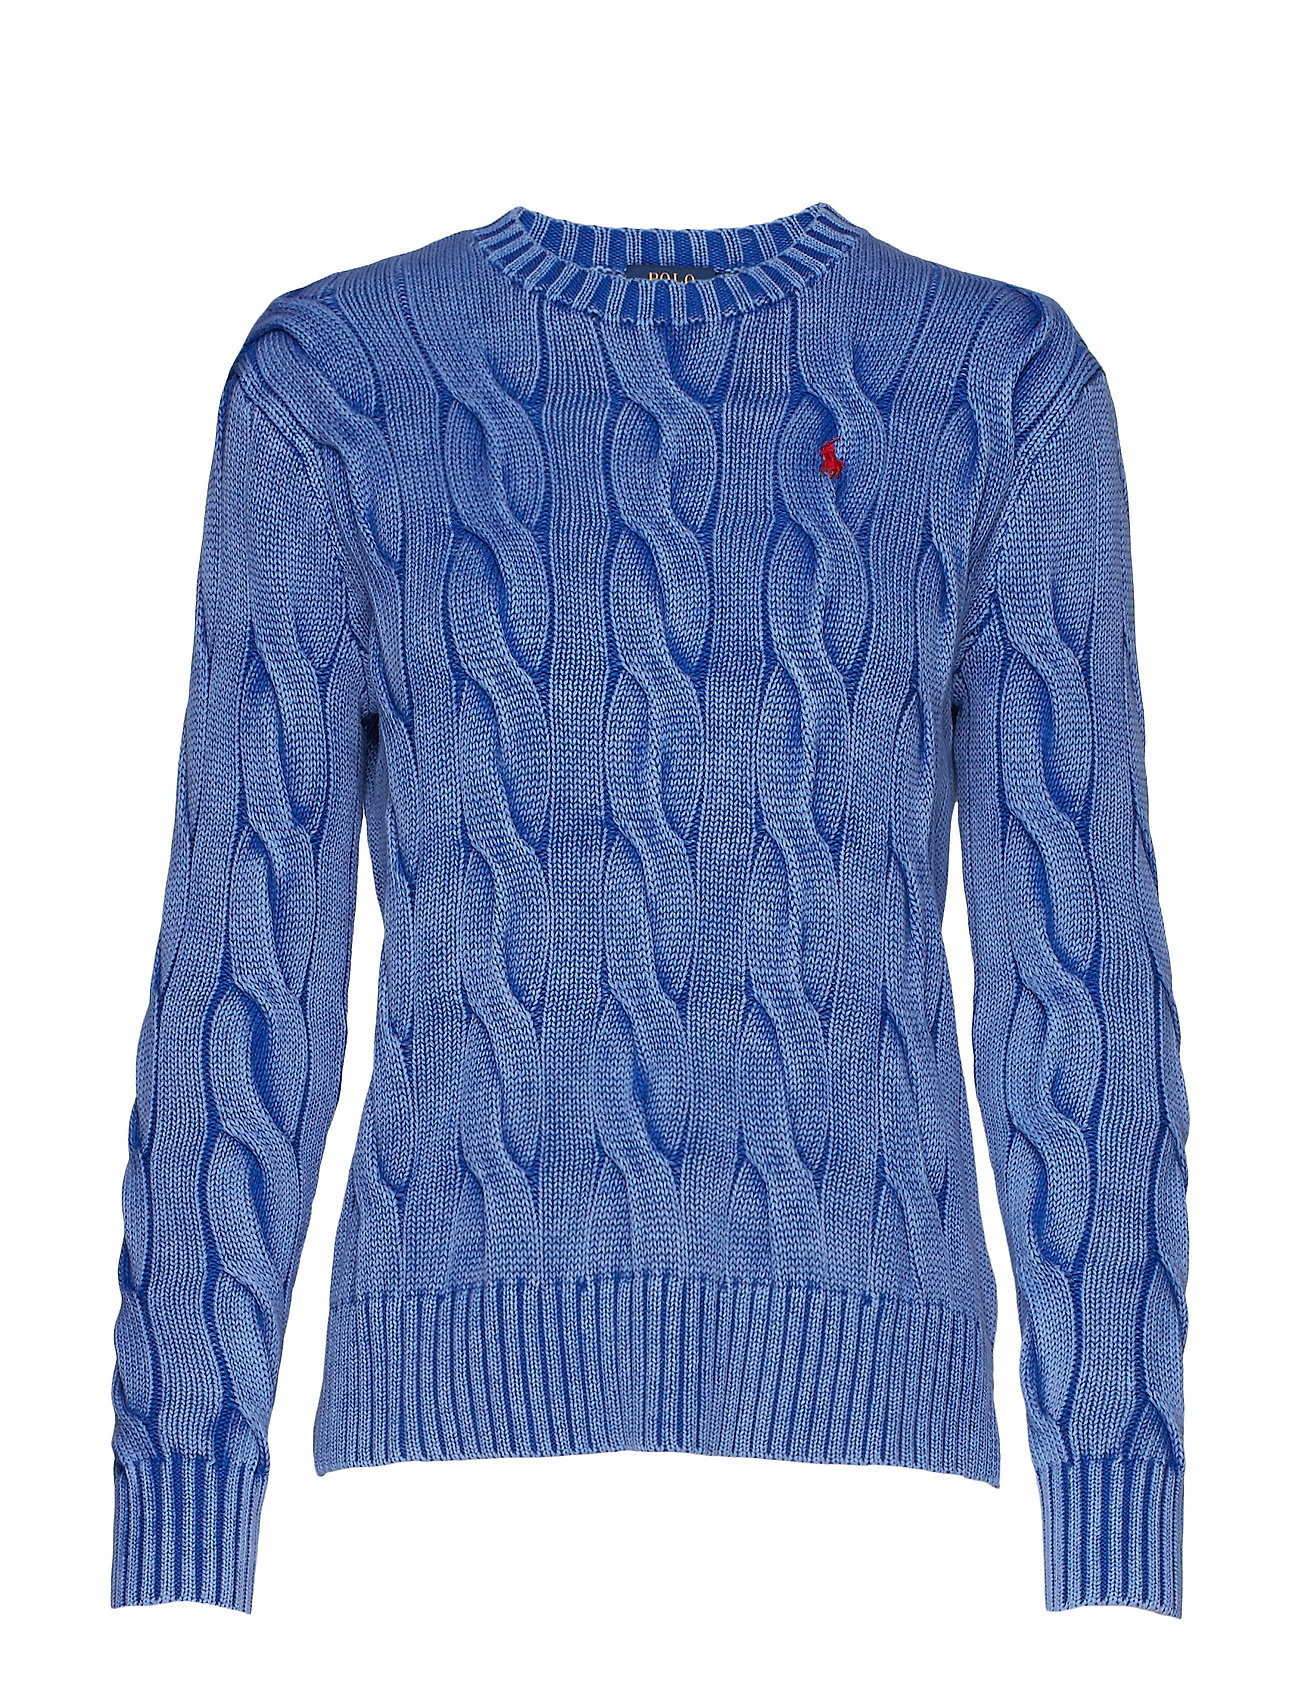 Polo Ralph Lauren Cable Knit Cotton Sweater Ögrönlar